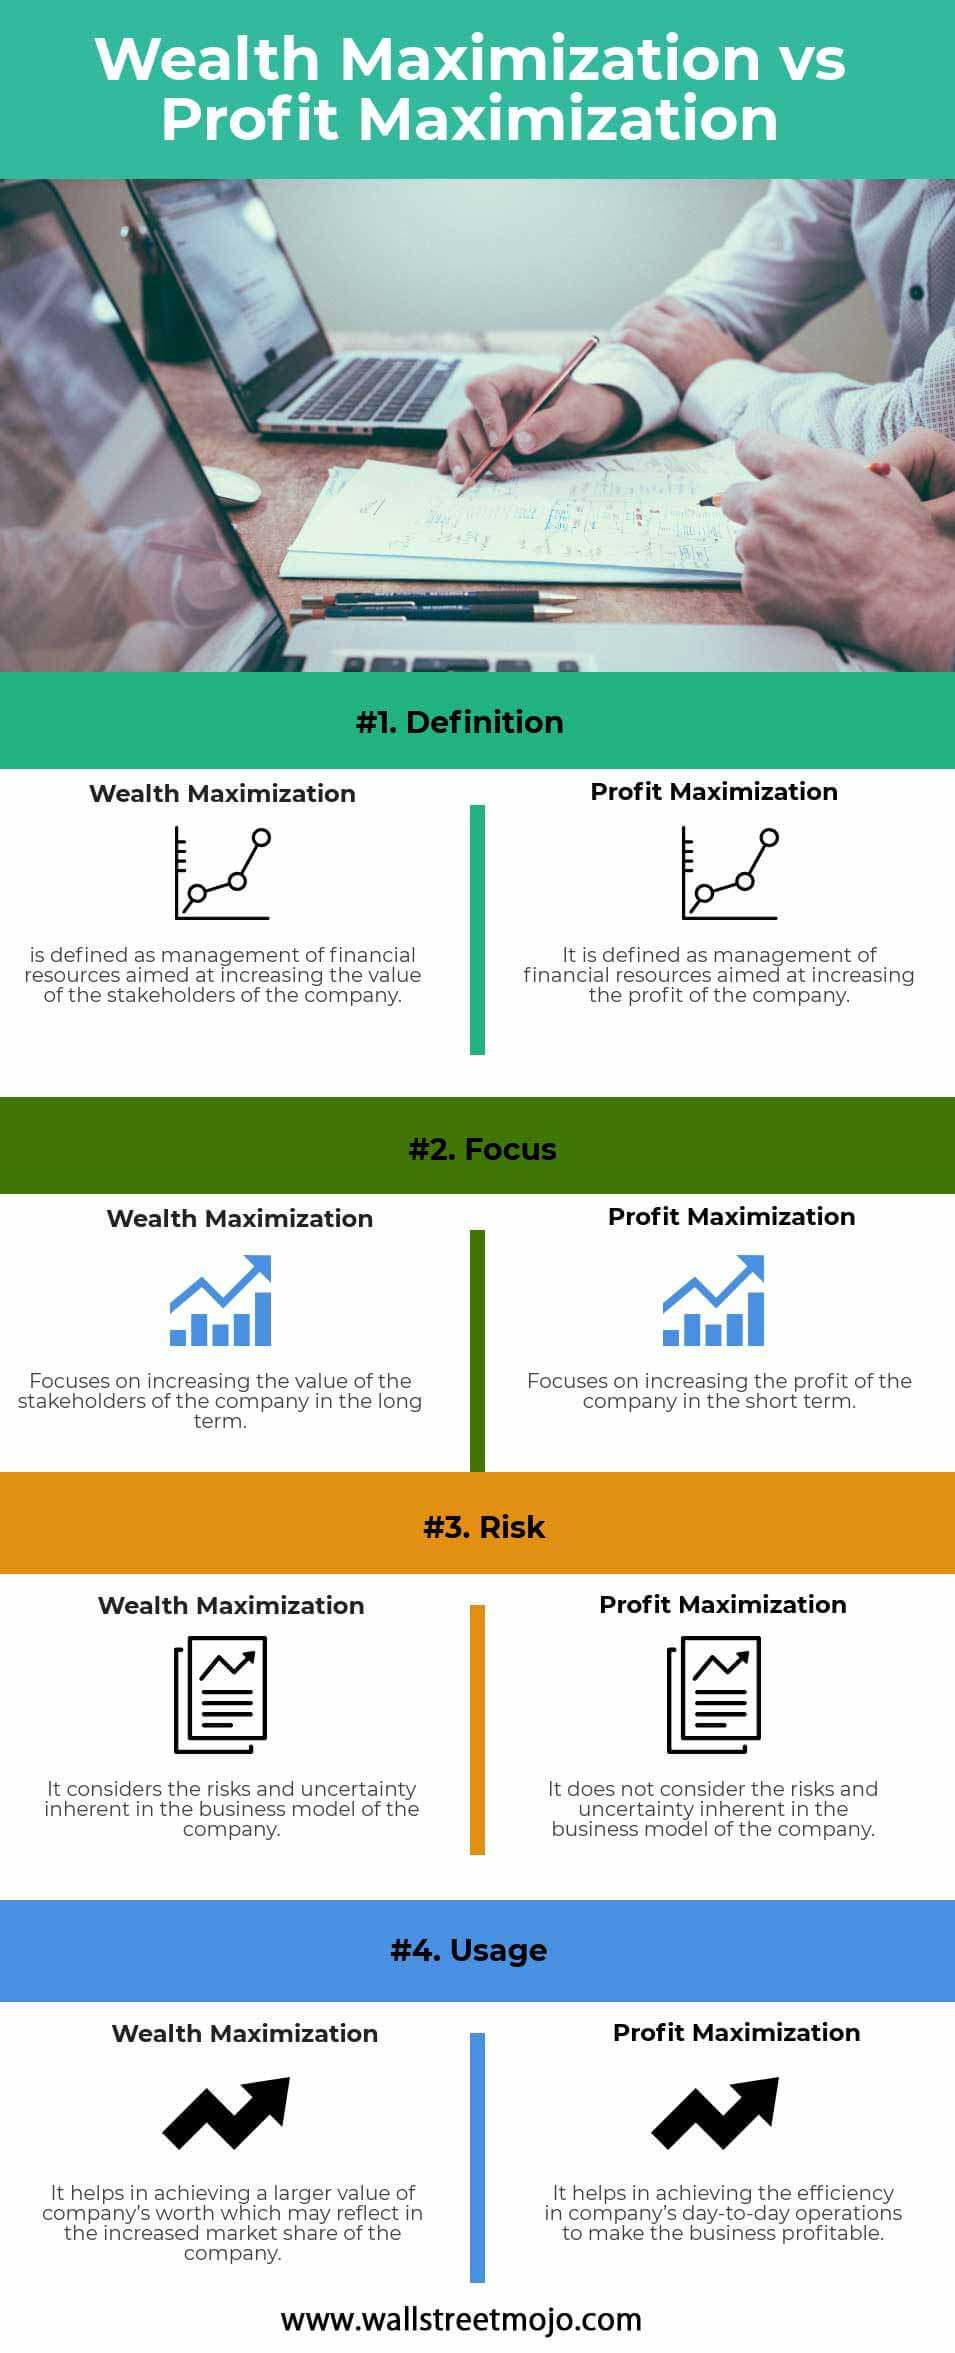 Wealth-Maximization-vs-Profit-Maximization-info